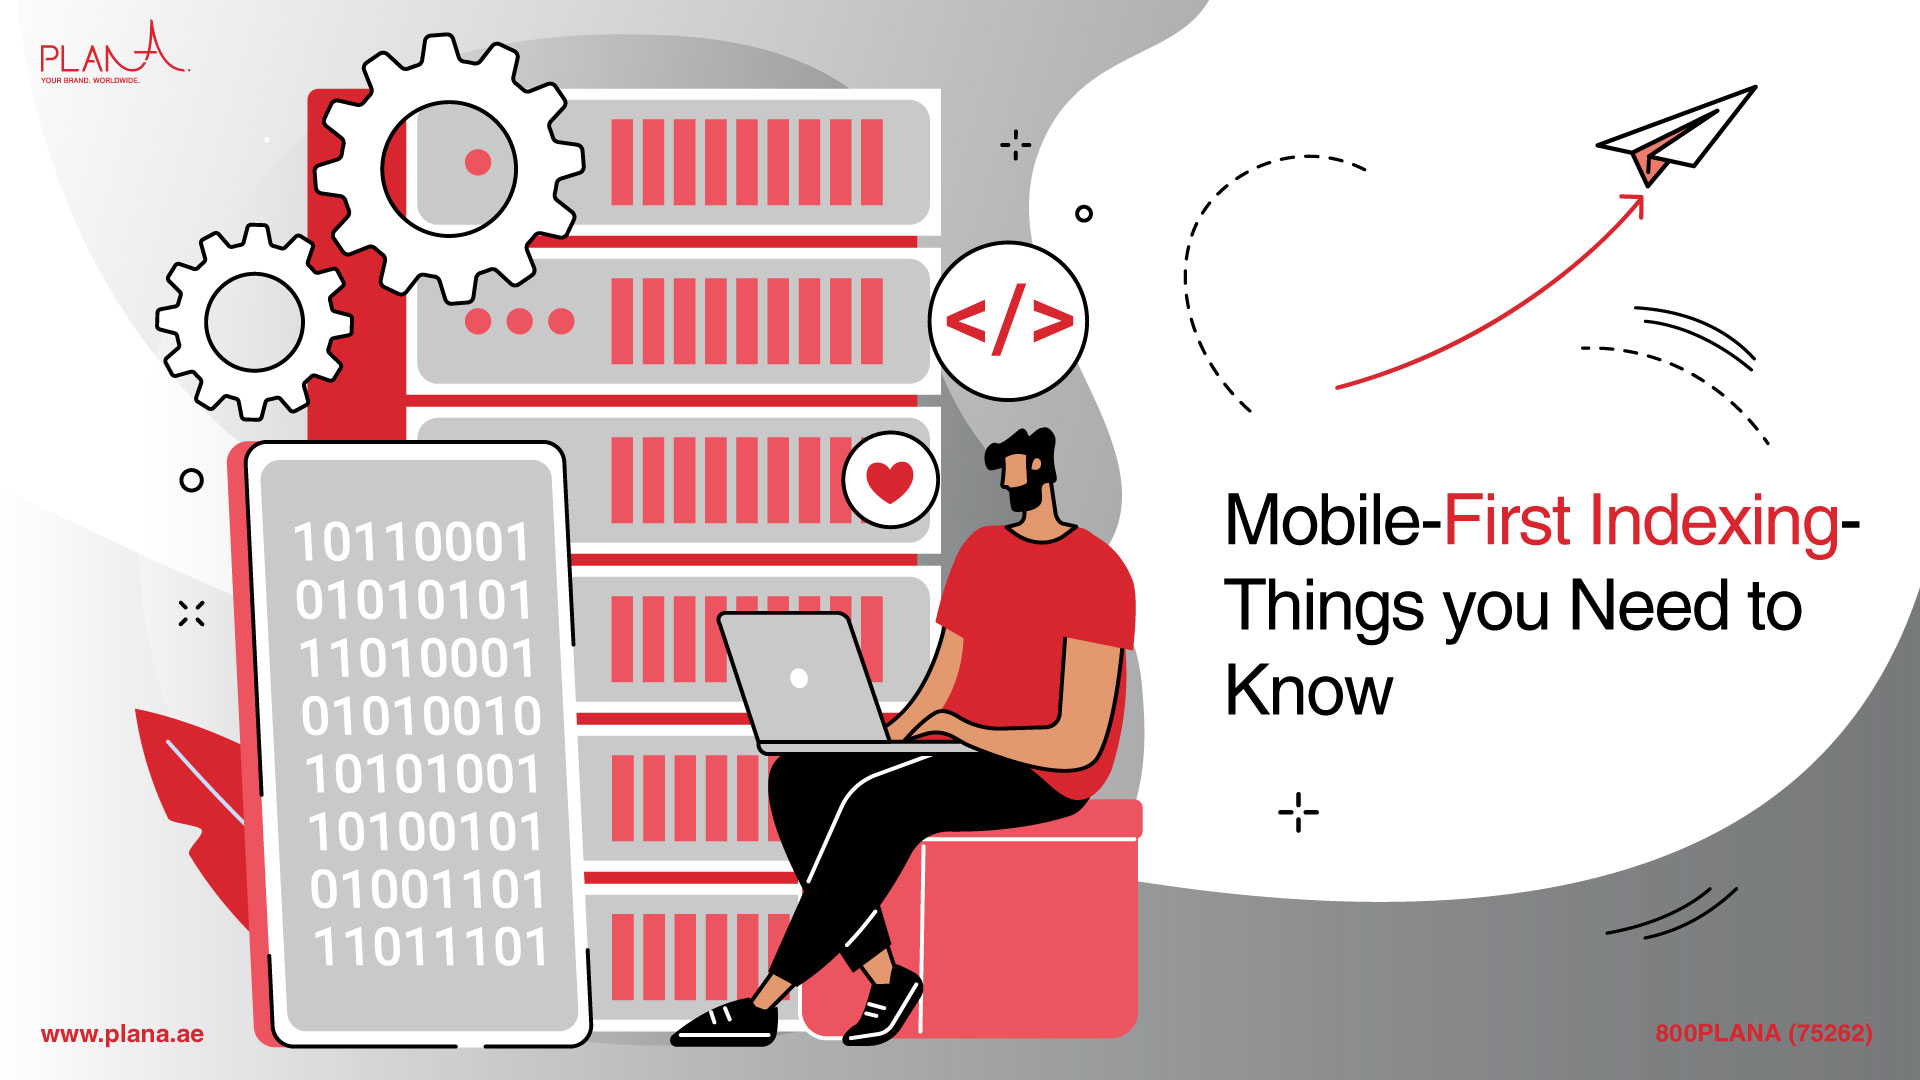 Mobile First Indexing - Things you Need to Know